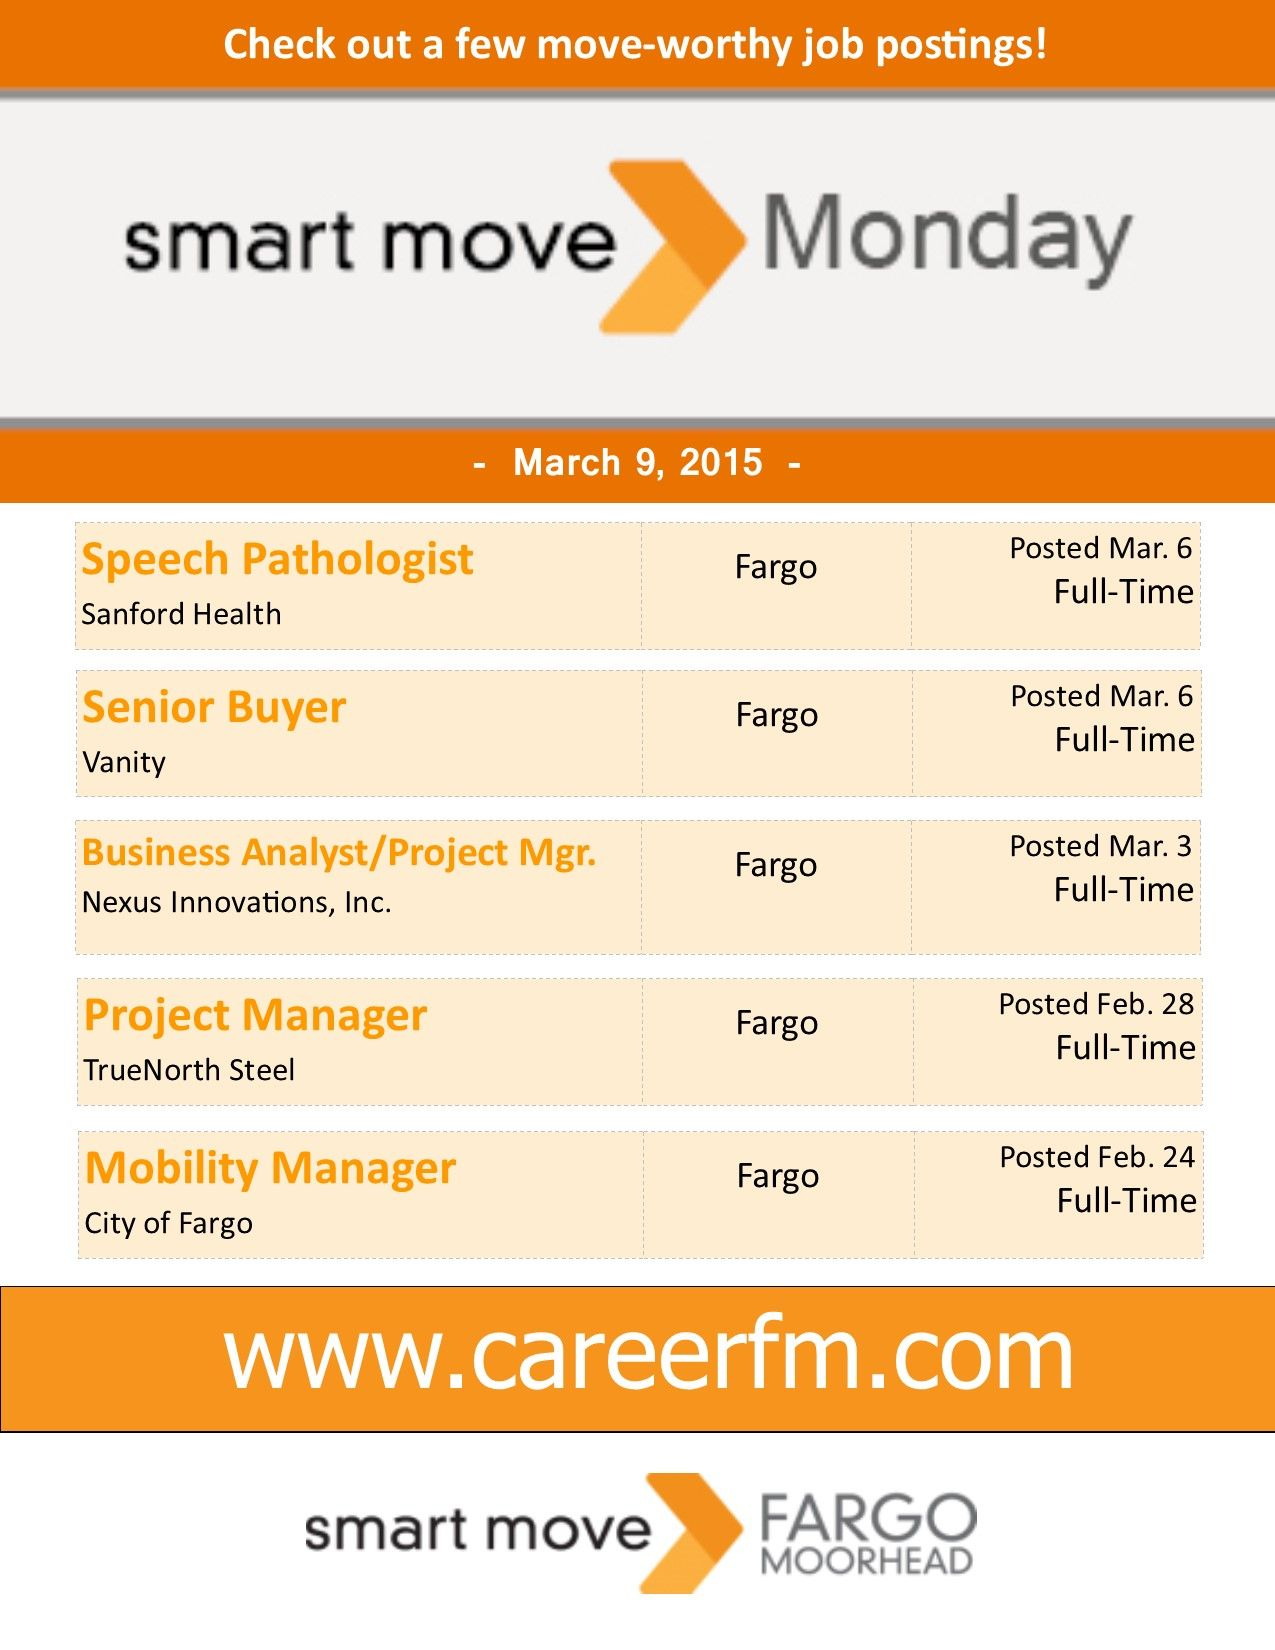 Here are your smartmovemonday job listings for march 9